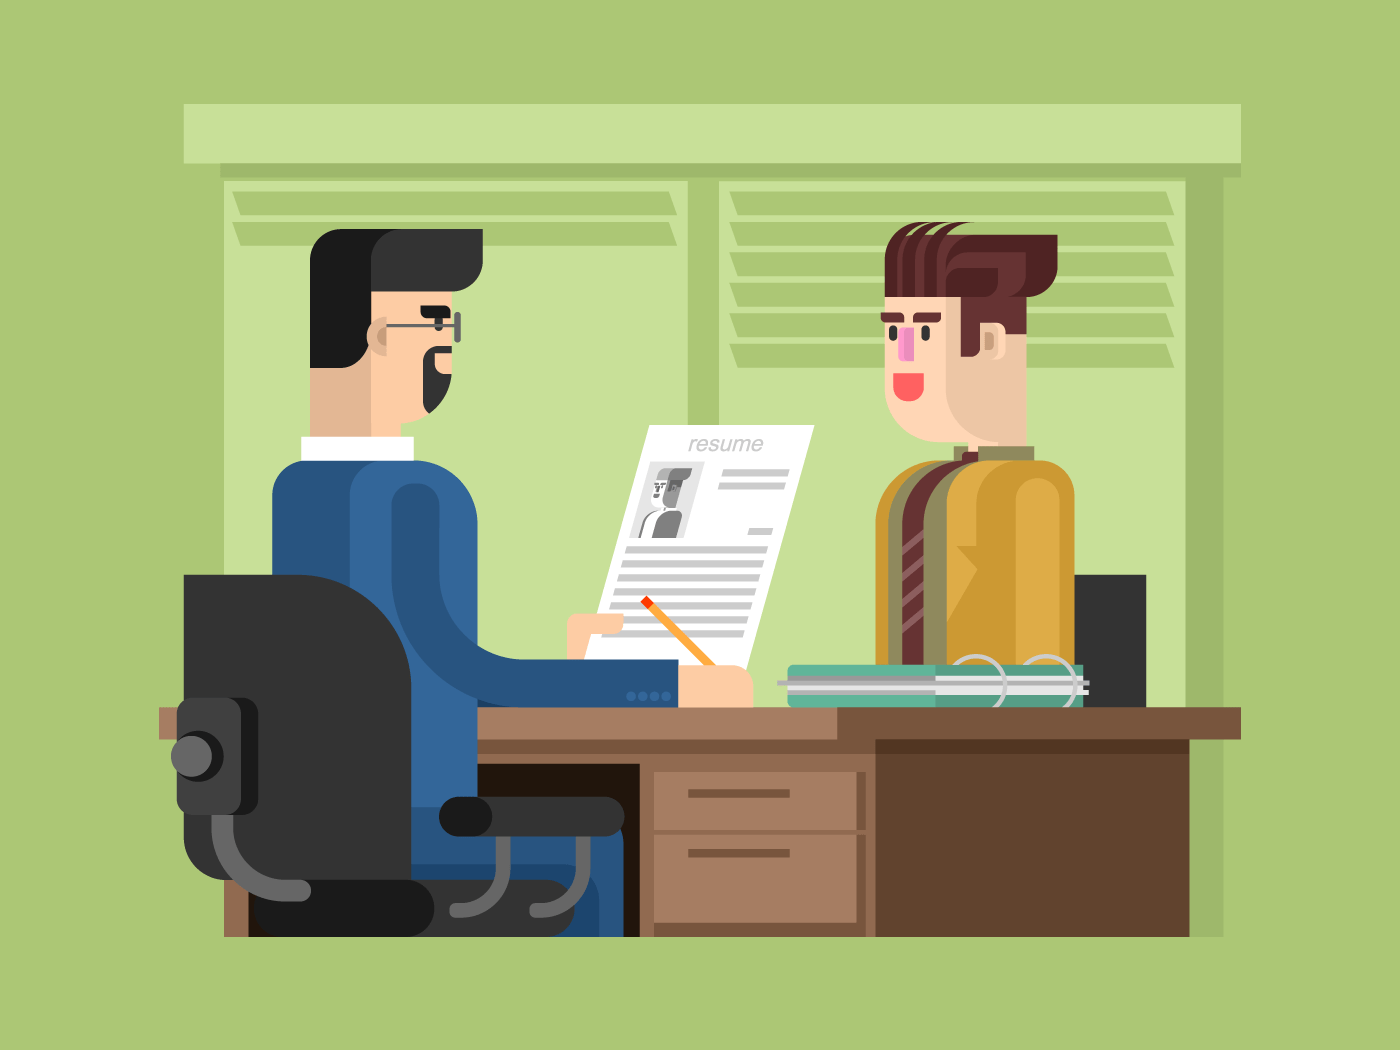 Job interview flat vector illustration